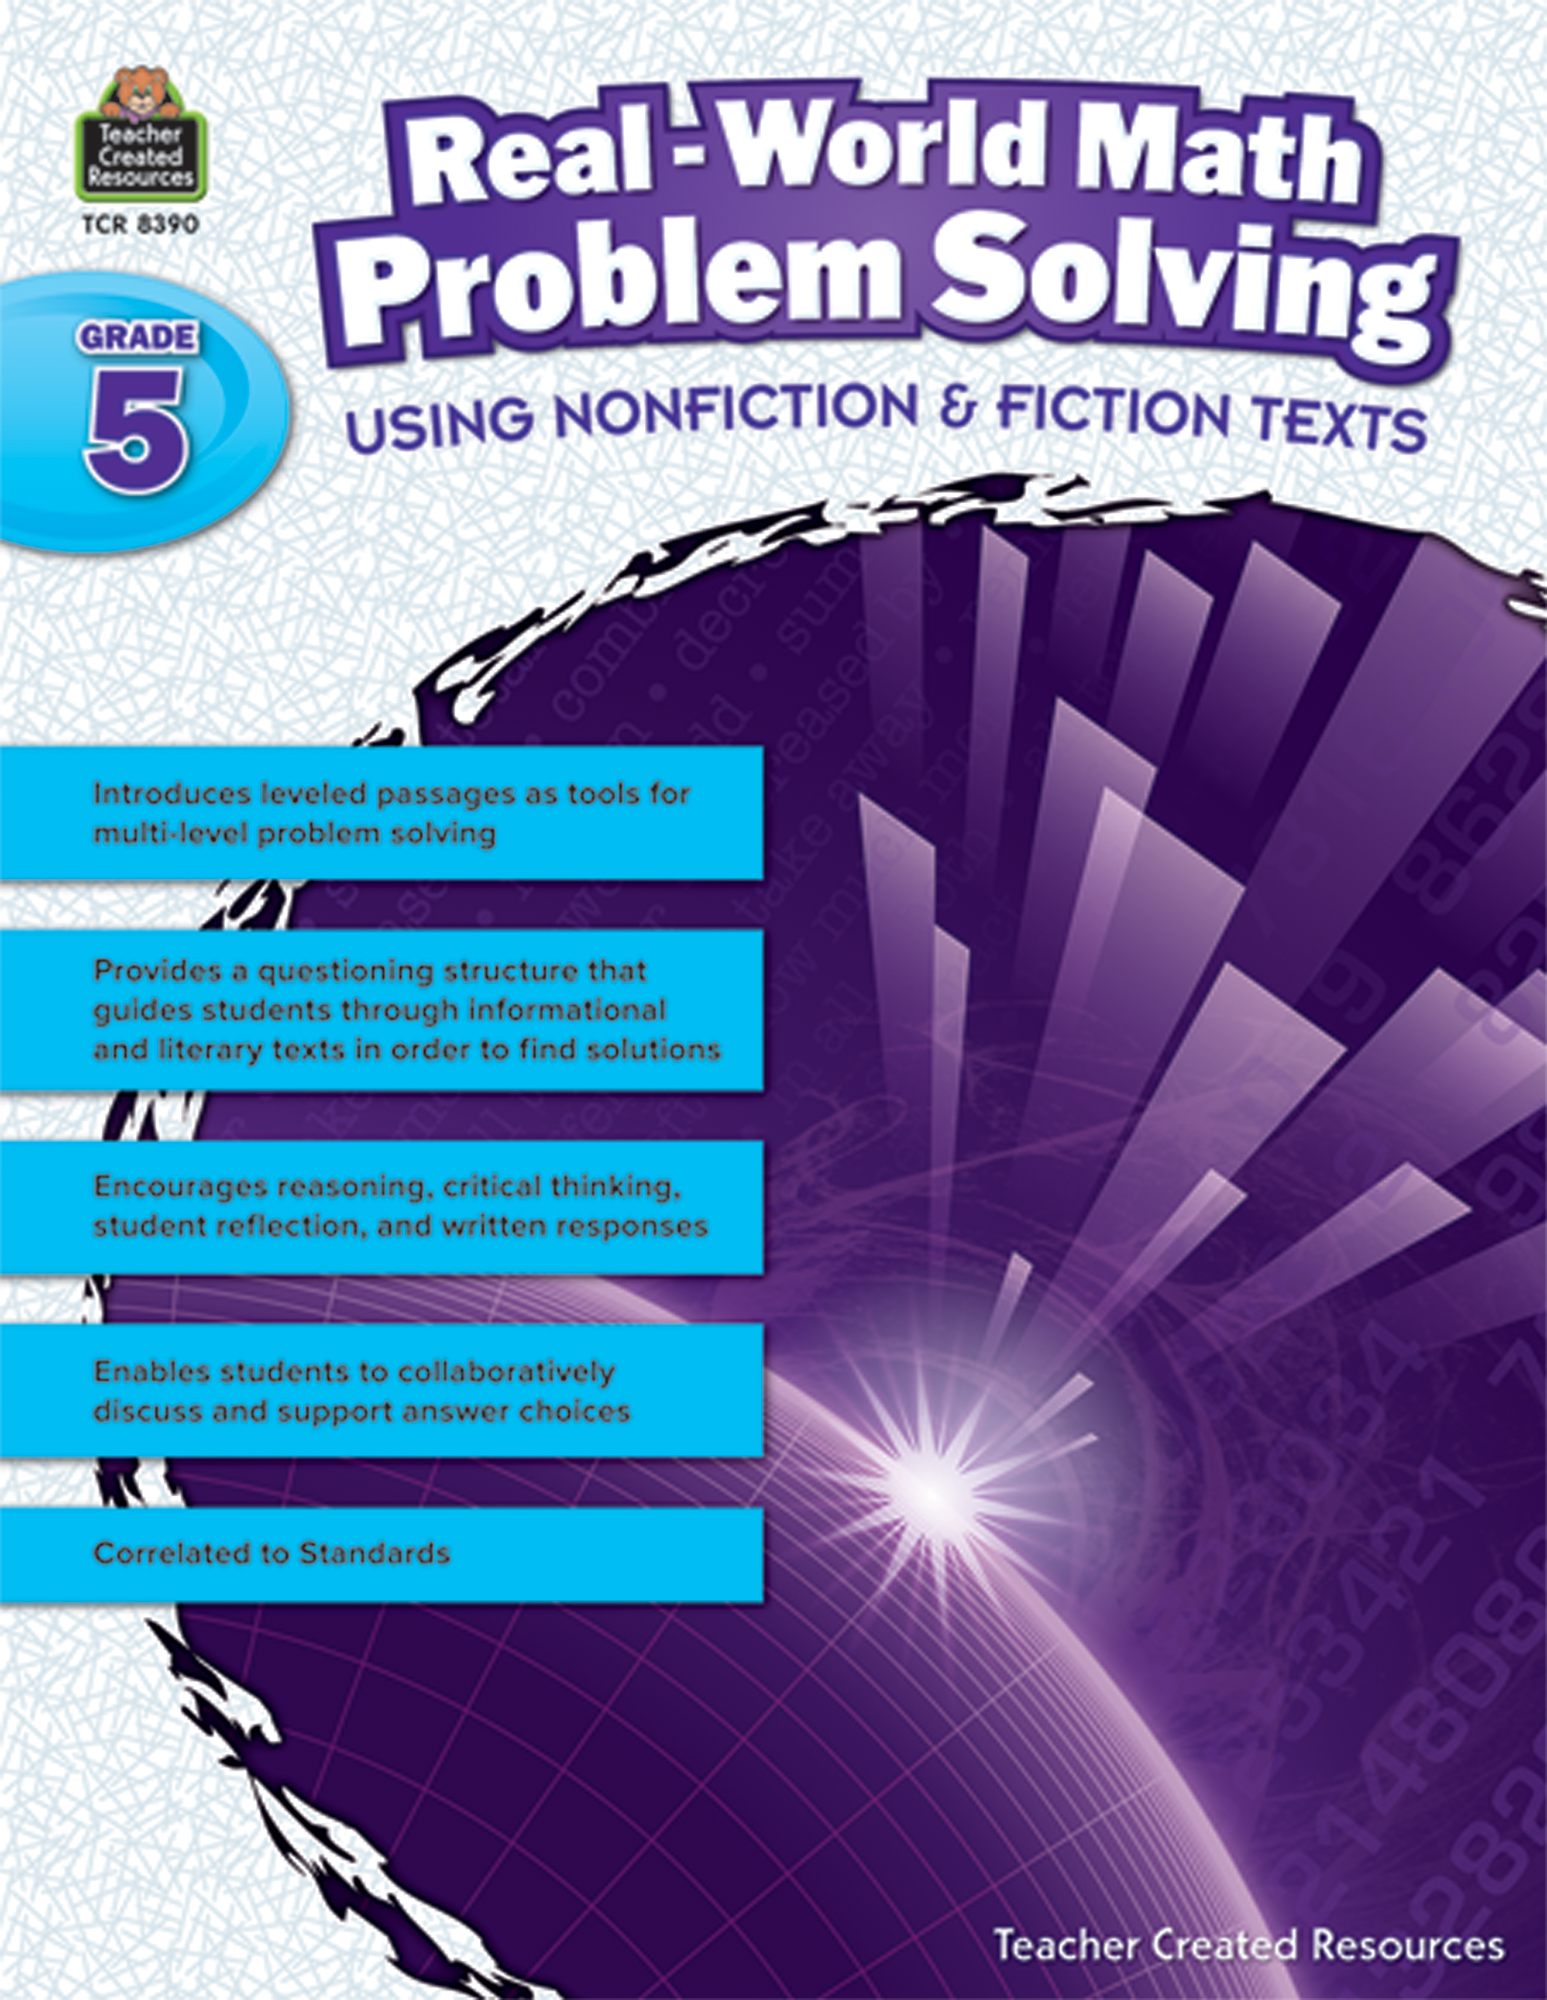 Real-World Math Problem Solving Grade 5 - TCR8390 | Teacher Created ...